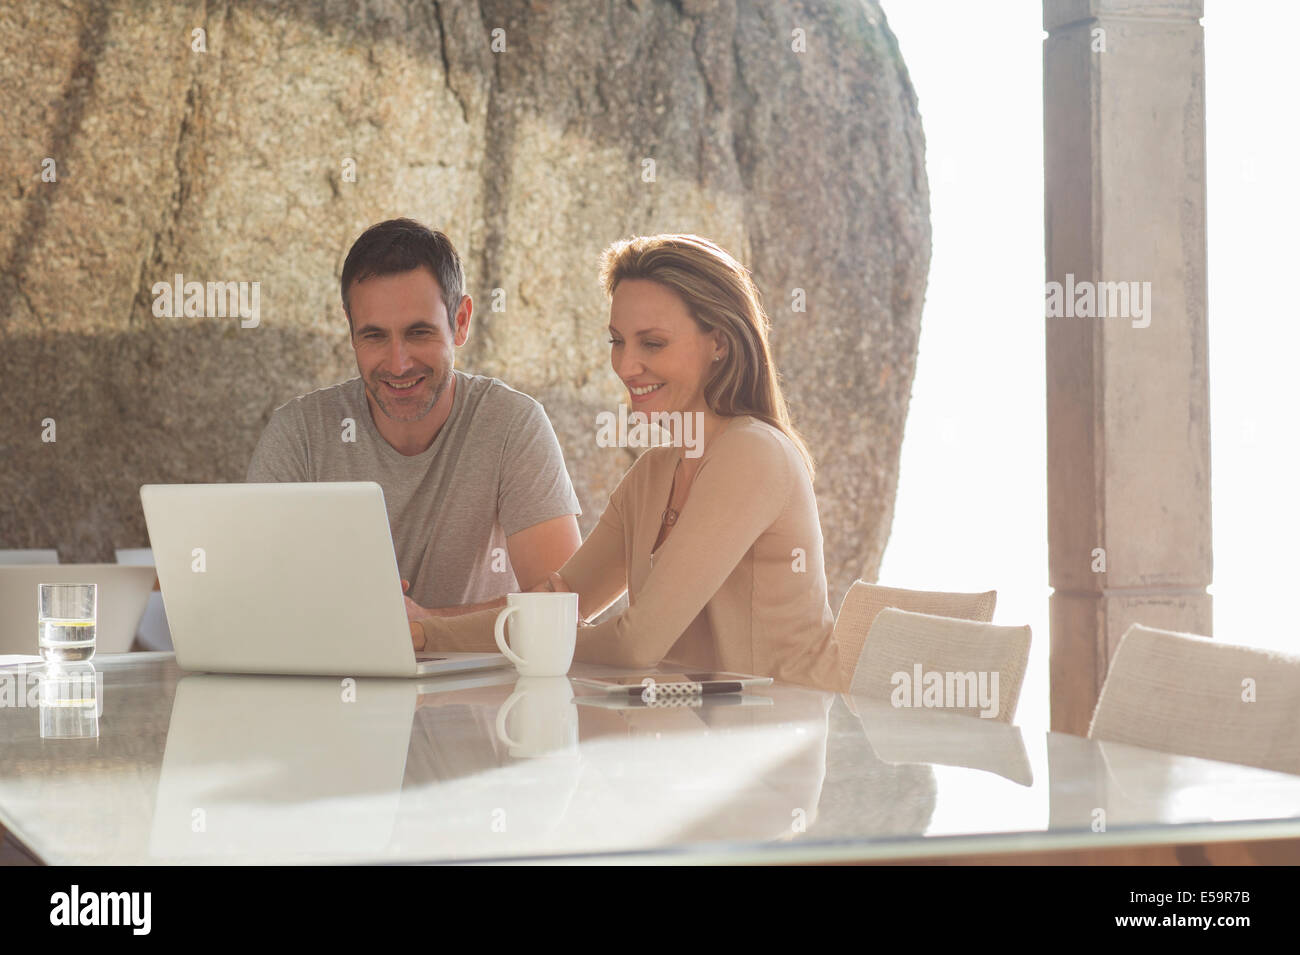 Couple using laptop at breakfast - Stock Image